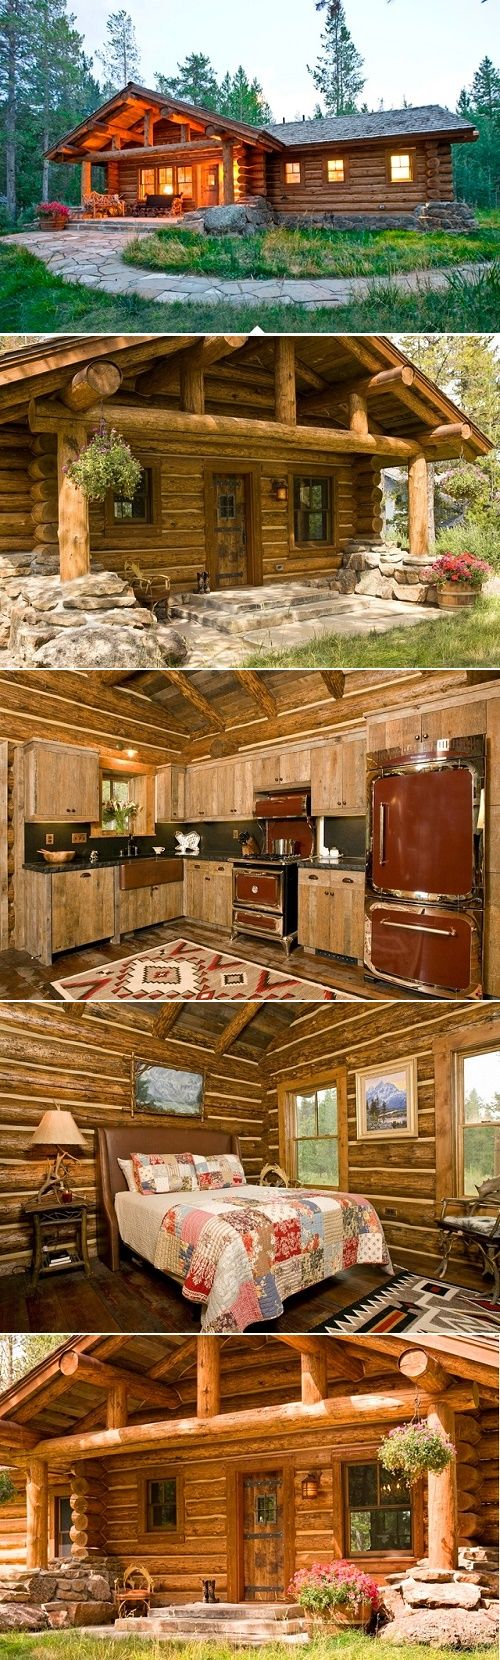 Rustic Cottage: A relaxation oasis in the woods